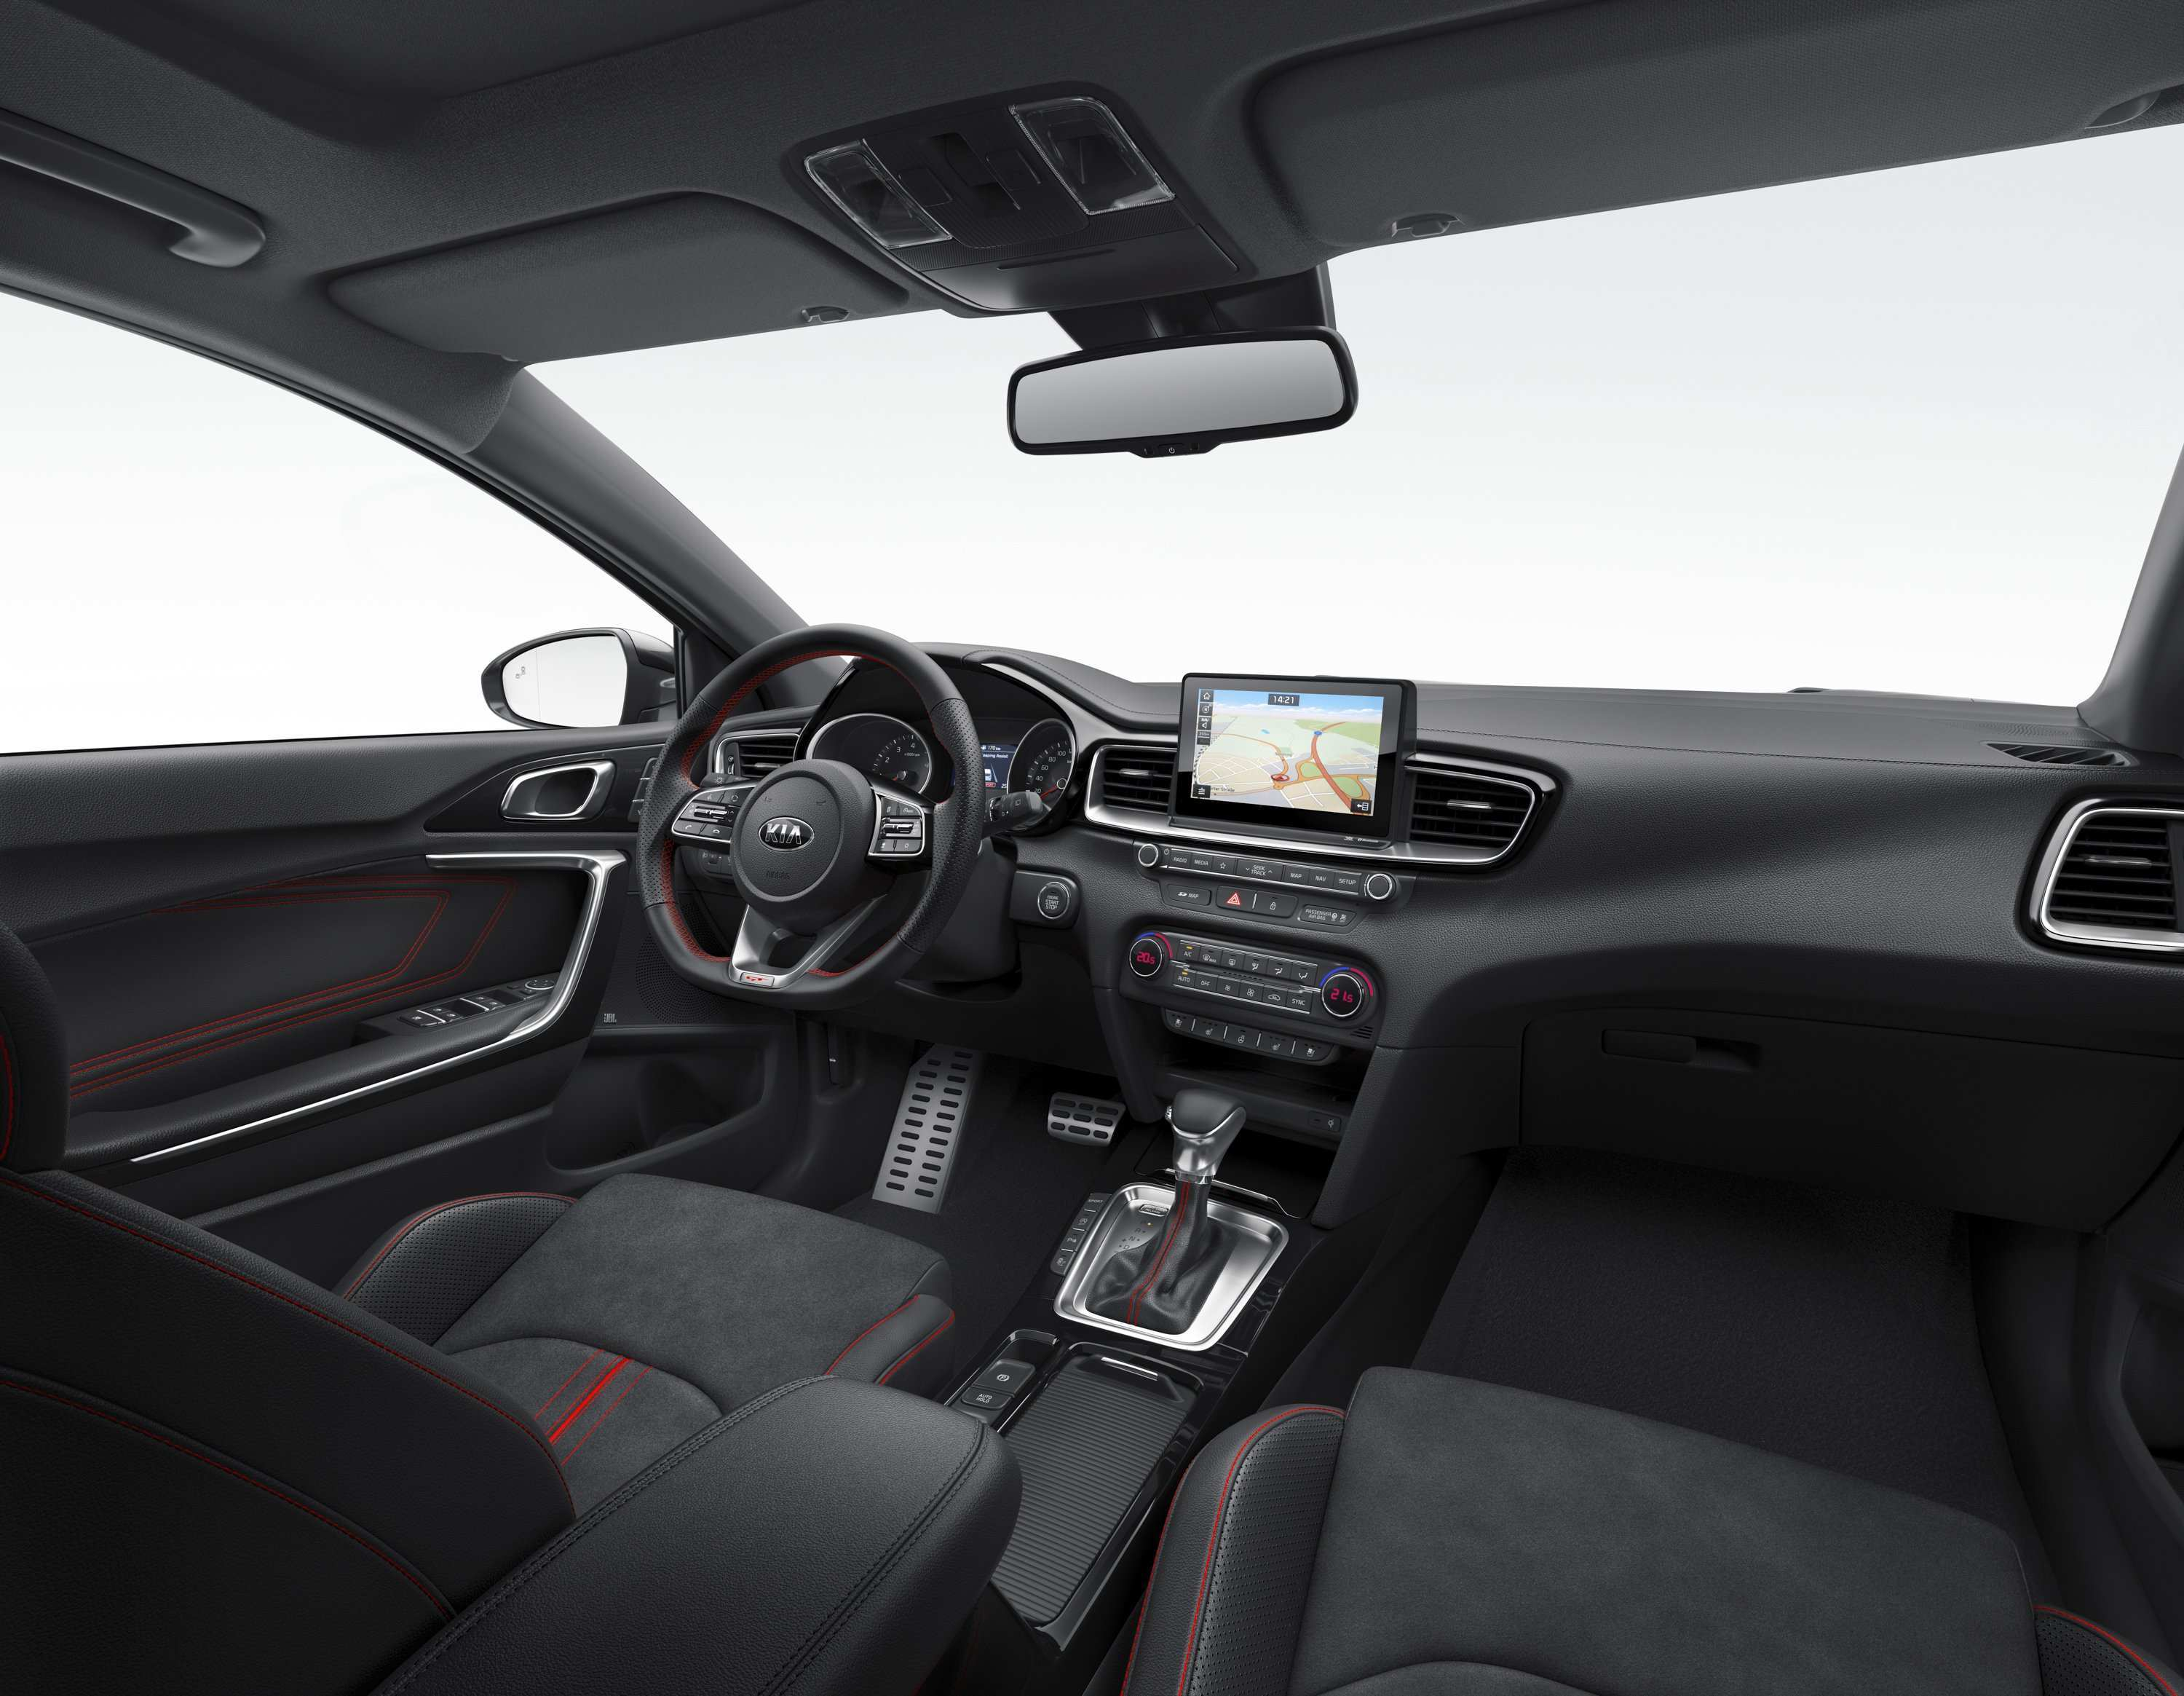 64 Best Review Kia Ceed Gt 2019 Exterior and Interior with Kia Ceed Gt 2019